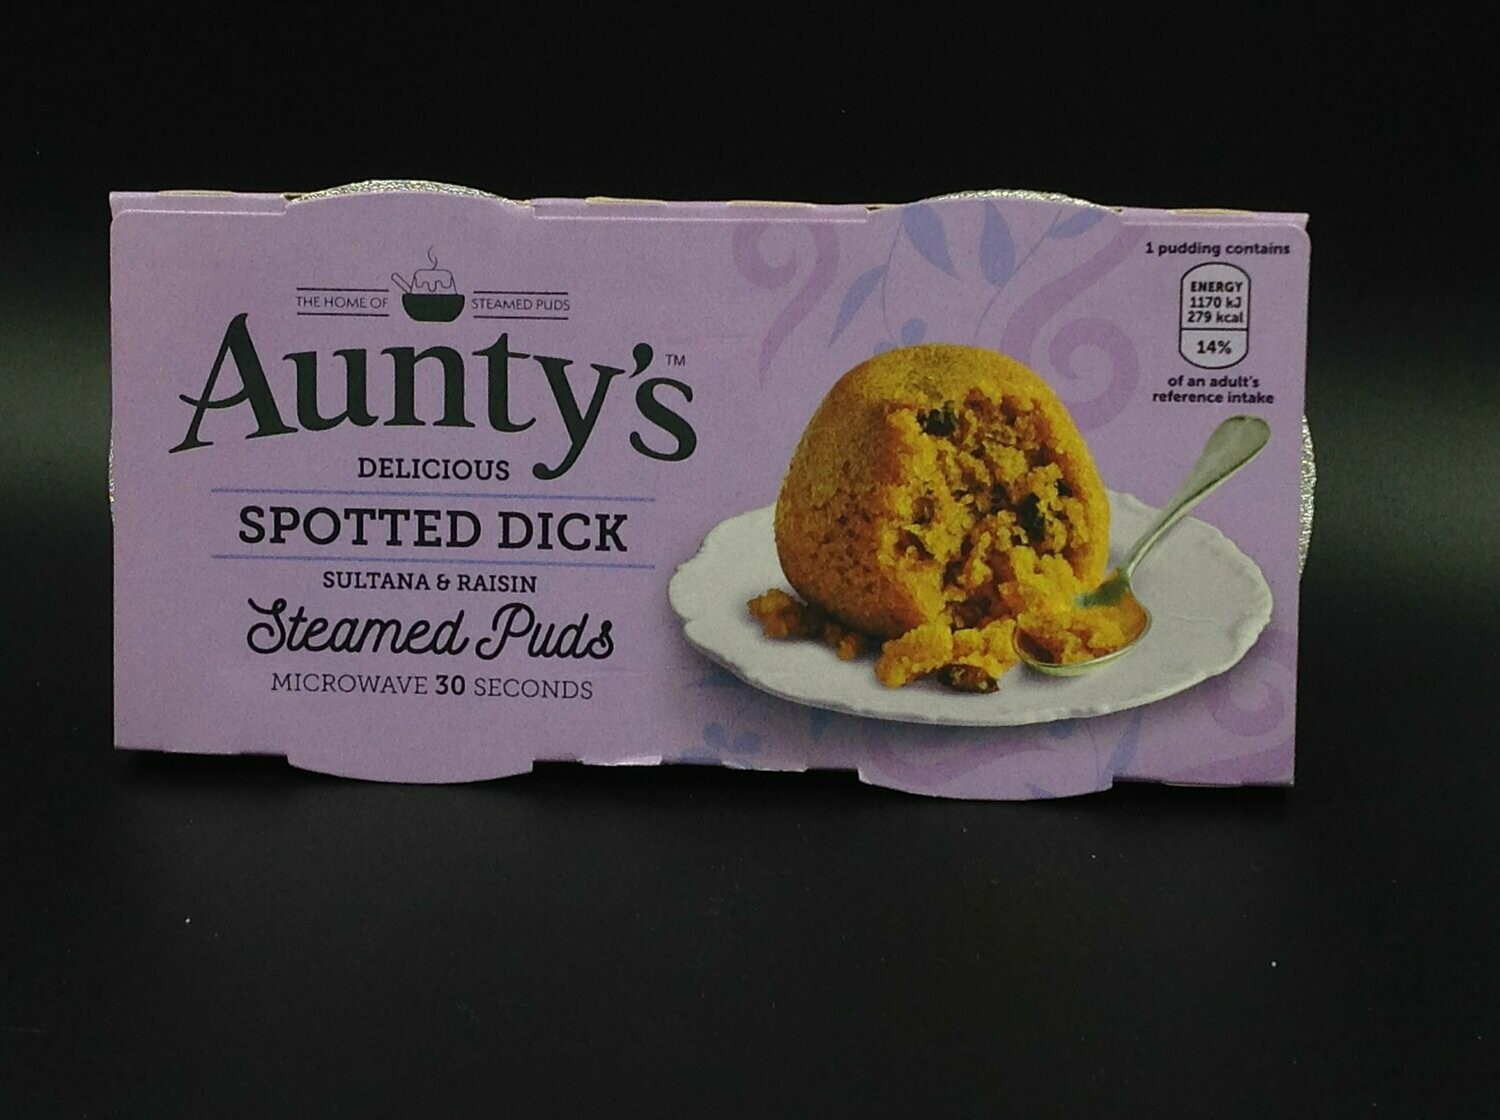 Auntys Spotted Dick 2x95g